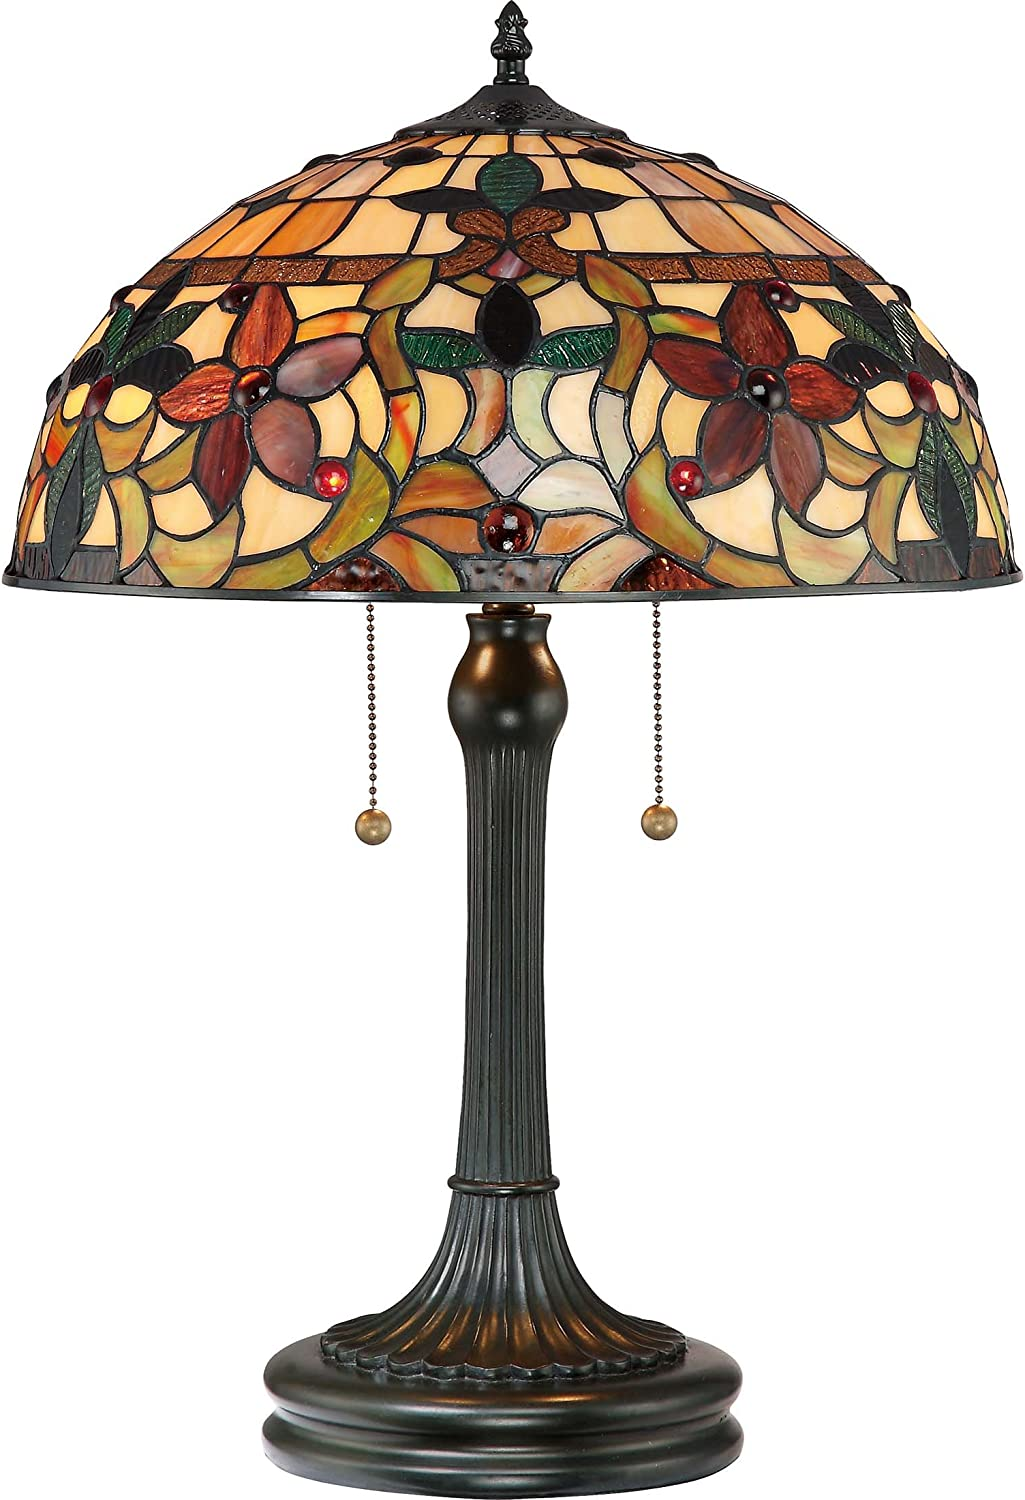 "Quoizel TF878T Kami Flower Tiffany Table Lamp, 2-Light, 150 Watts, Vintage Bronze (23"" H x 16"" W)"